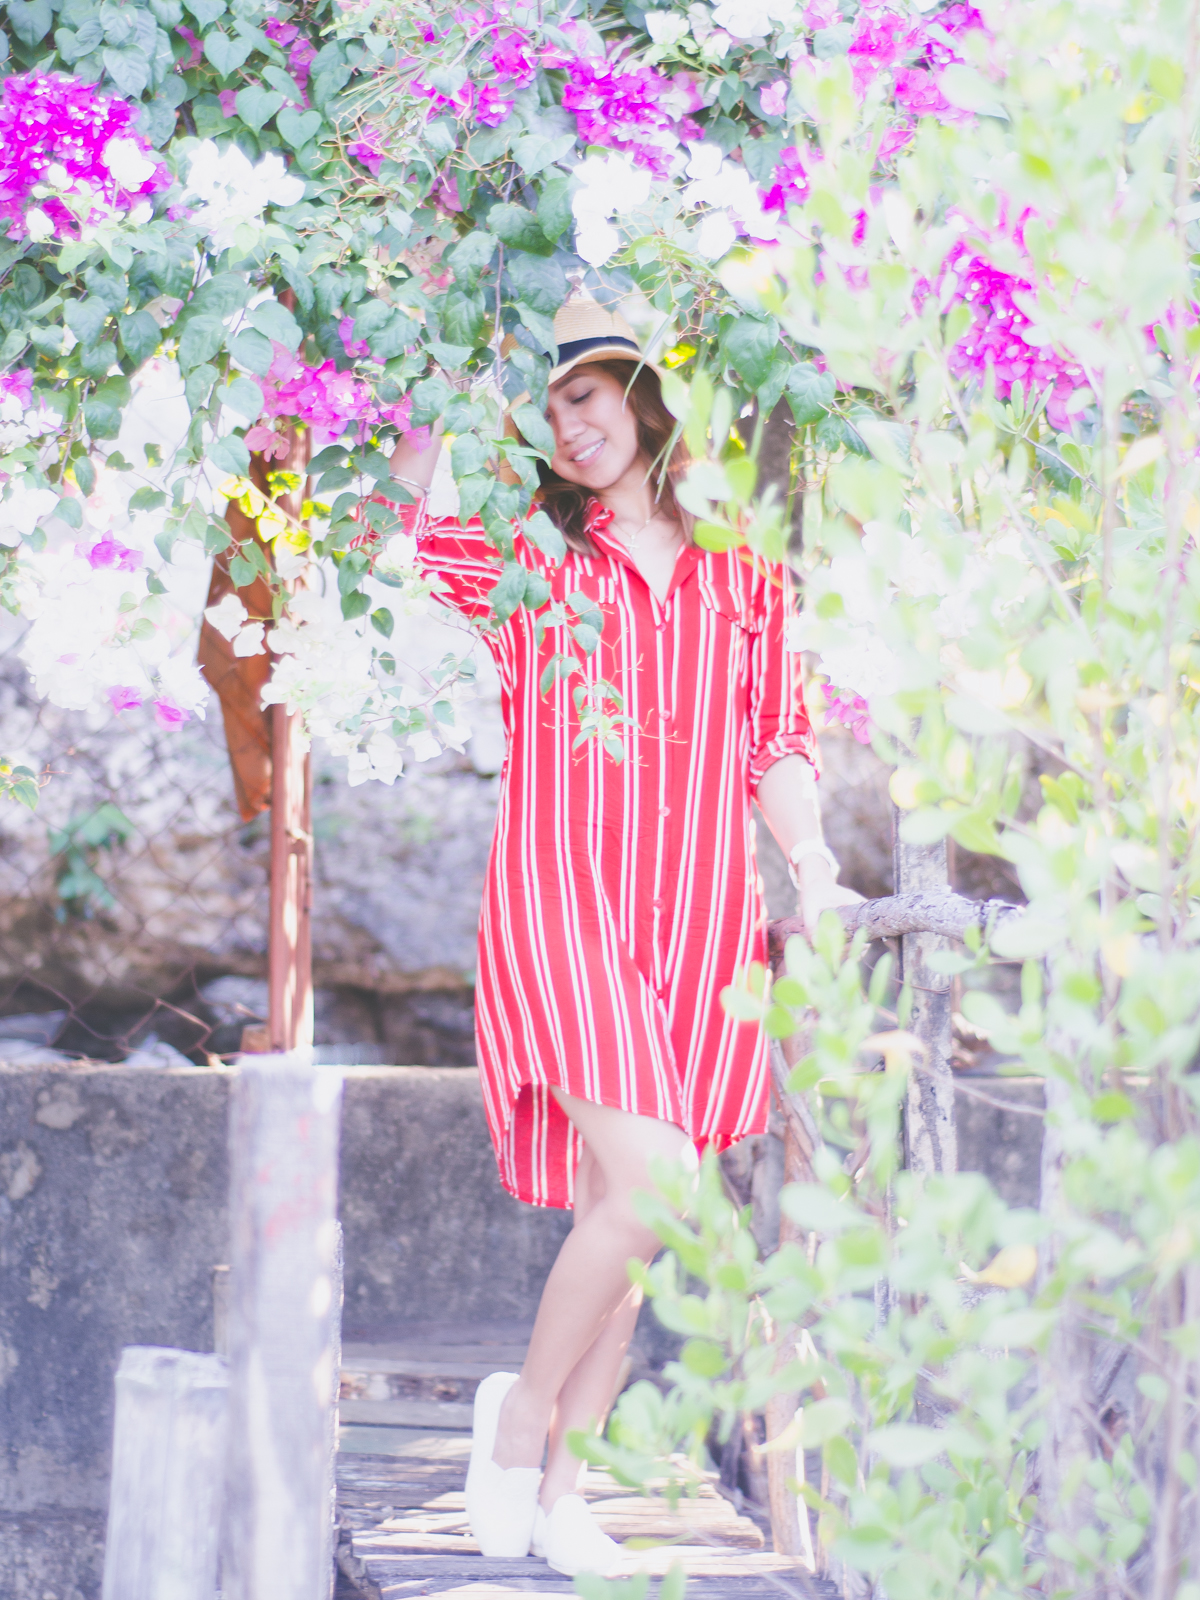 Cebu Fashion Blogger, Cebu Blogger, Cebu Beauty Blogger, Cebu Bloggers Society, Mommy Style, Mommy Outfit, Shirt Dress, How to wear a shirt dress, Tropical Dressing, Flossy, Plimsolls, We Are CFB, Cebu Fashion Bloggers Group, Asian, Blogger, Philippine Blogger